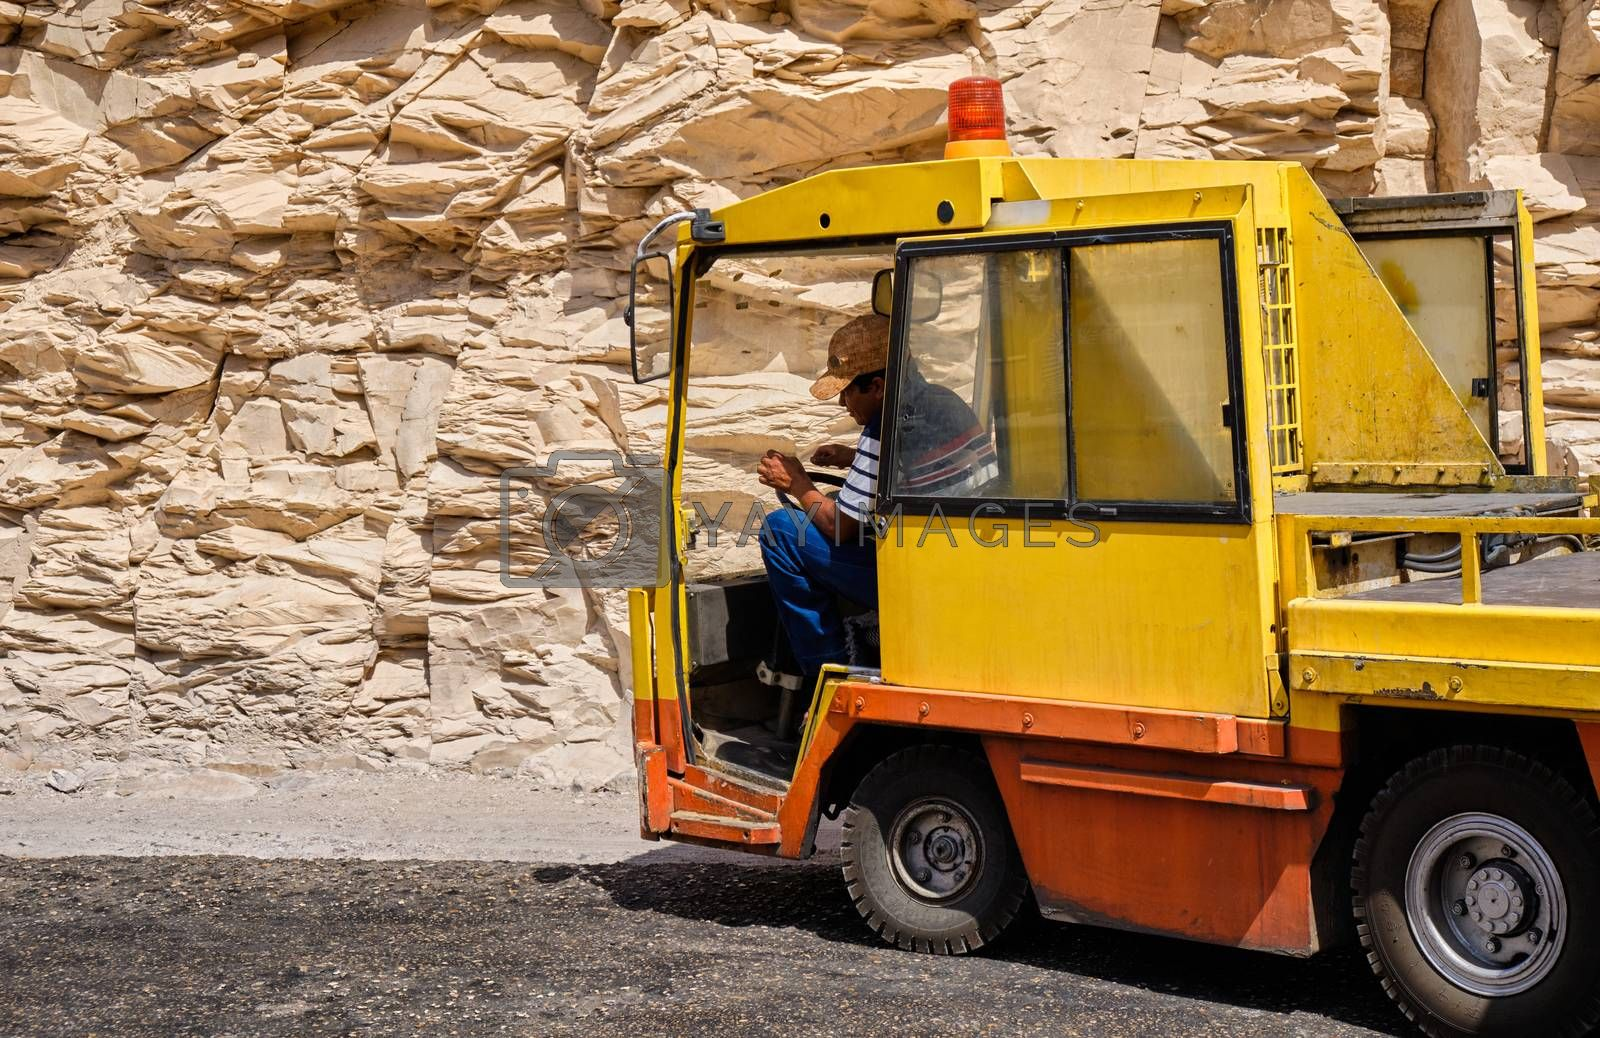 Luxor / Egypt - May 23, 2019: Tuf-tuf (little electrical train car) which ferries tourists to the pharaoh tombs in the Valley of the Kings in Luxor, Egypt